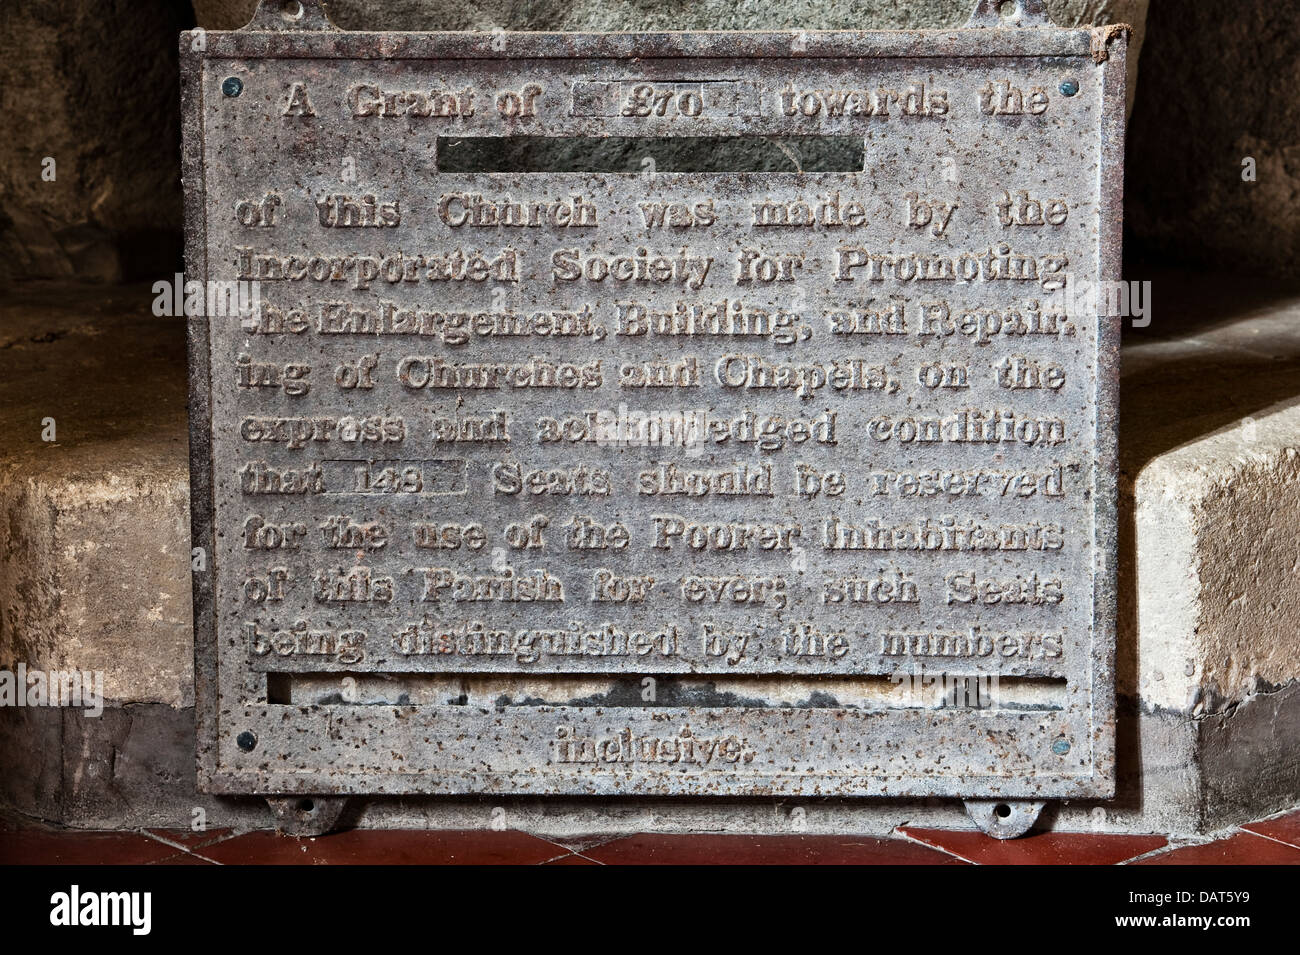 St Stephen's Church, Old Radnor, Powys, UK. An old  plaque recording a charitable donation to the church - Stock Image